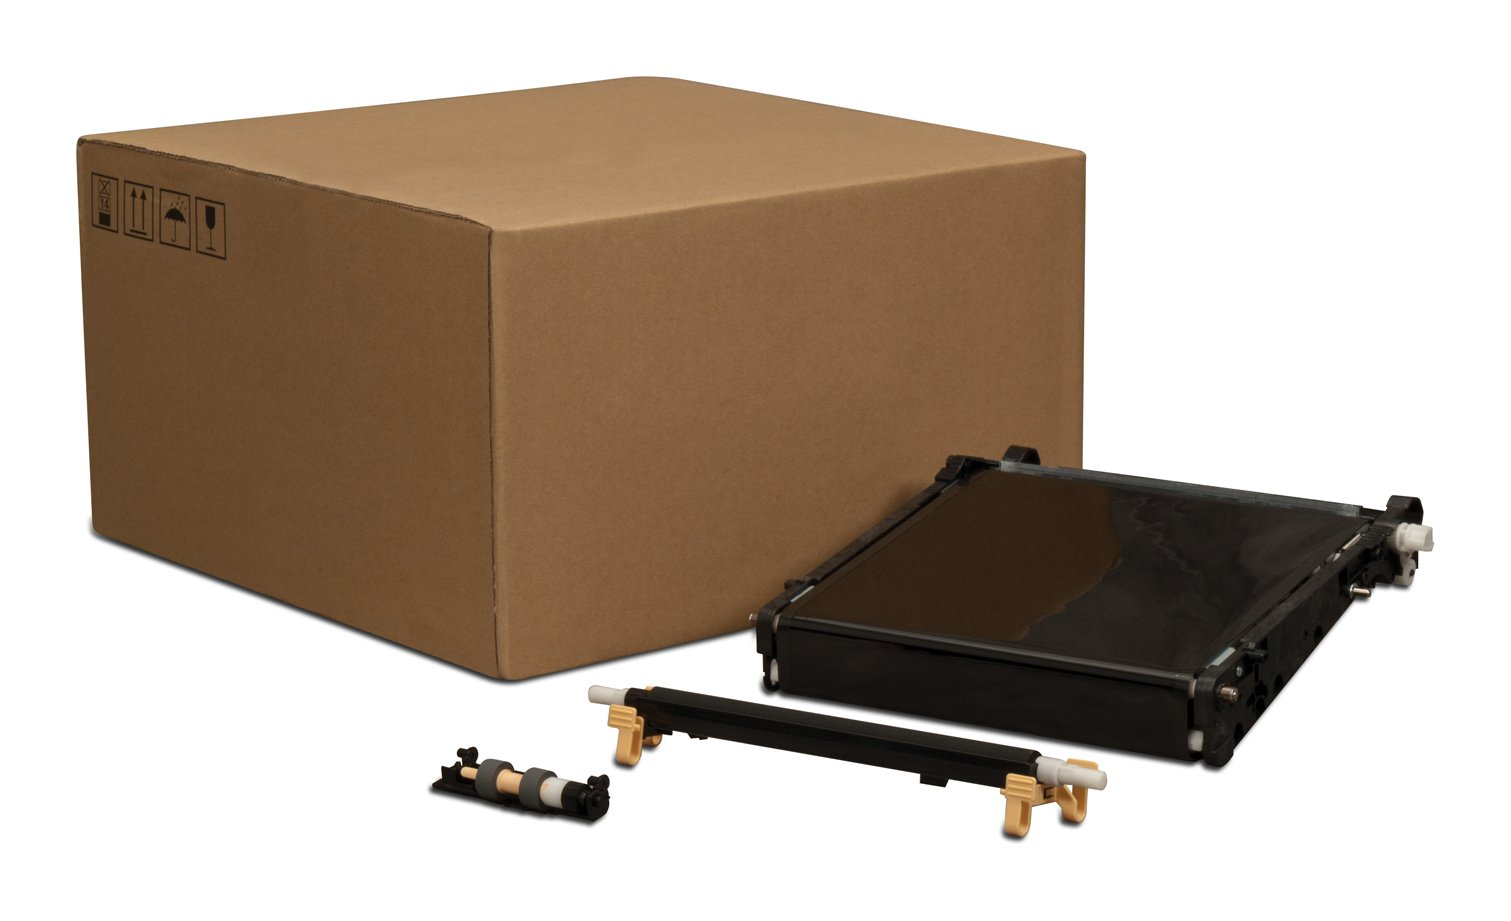 Genuine Xerox Transfer Unit Kit for the Xerox Phaser 6600 or WorkCentre 6605, 108R01122 by Xerox